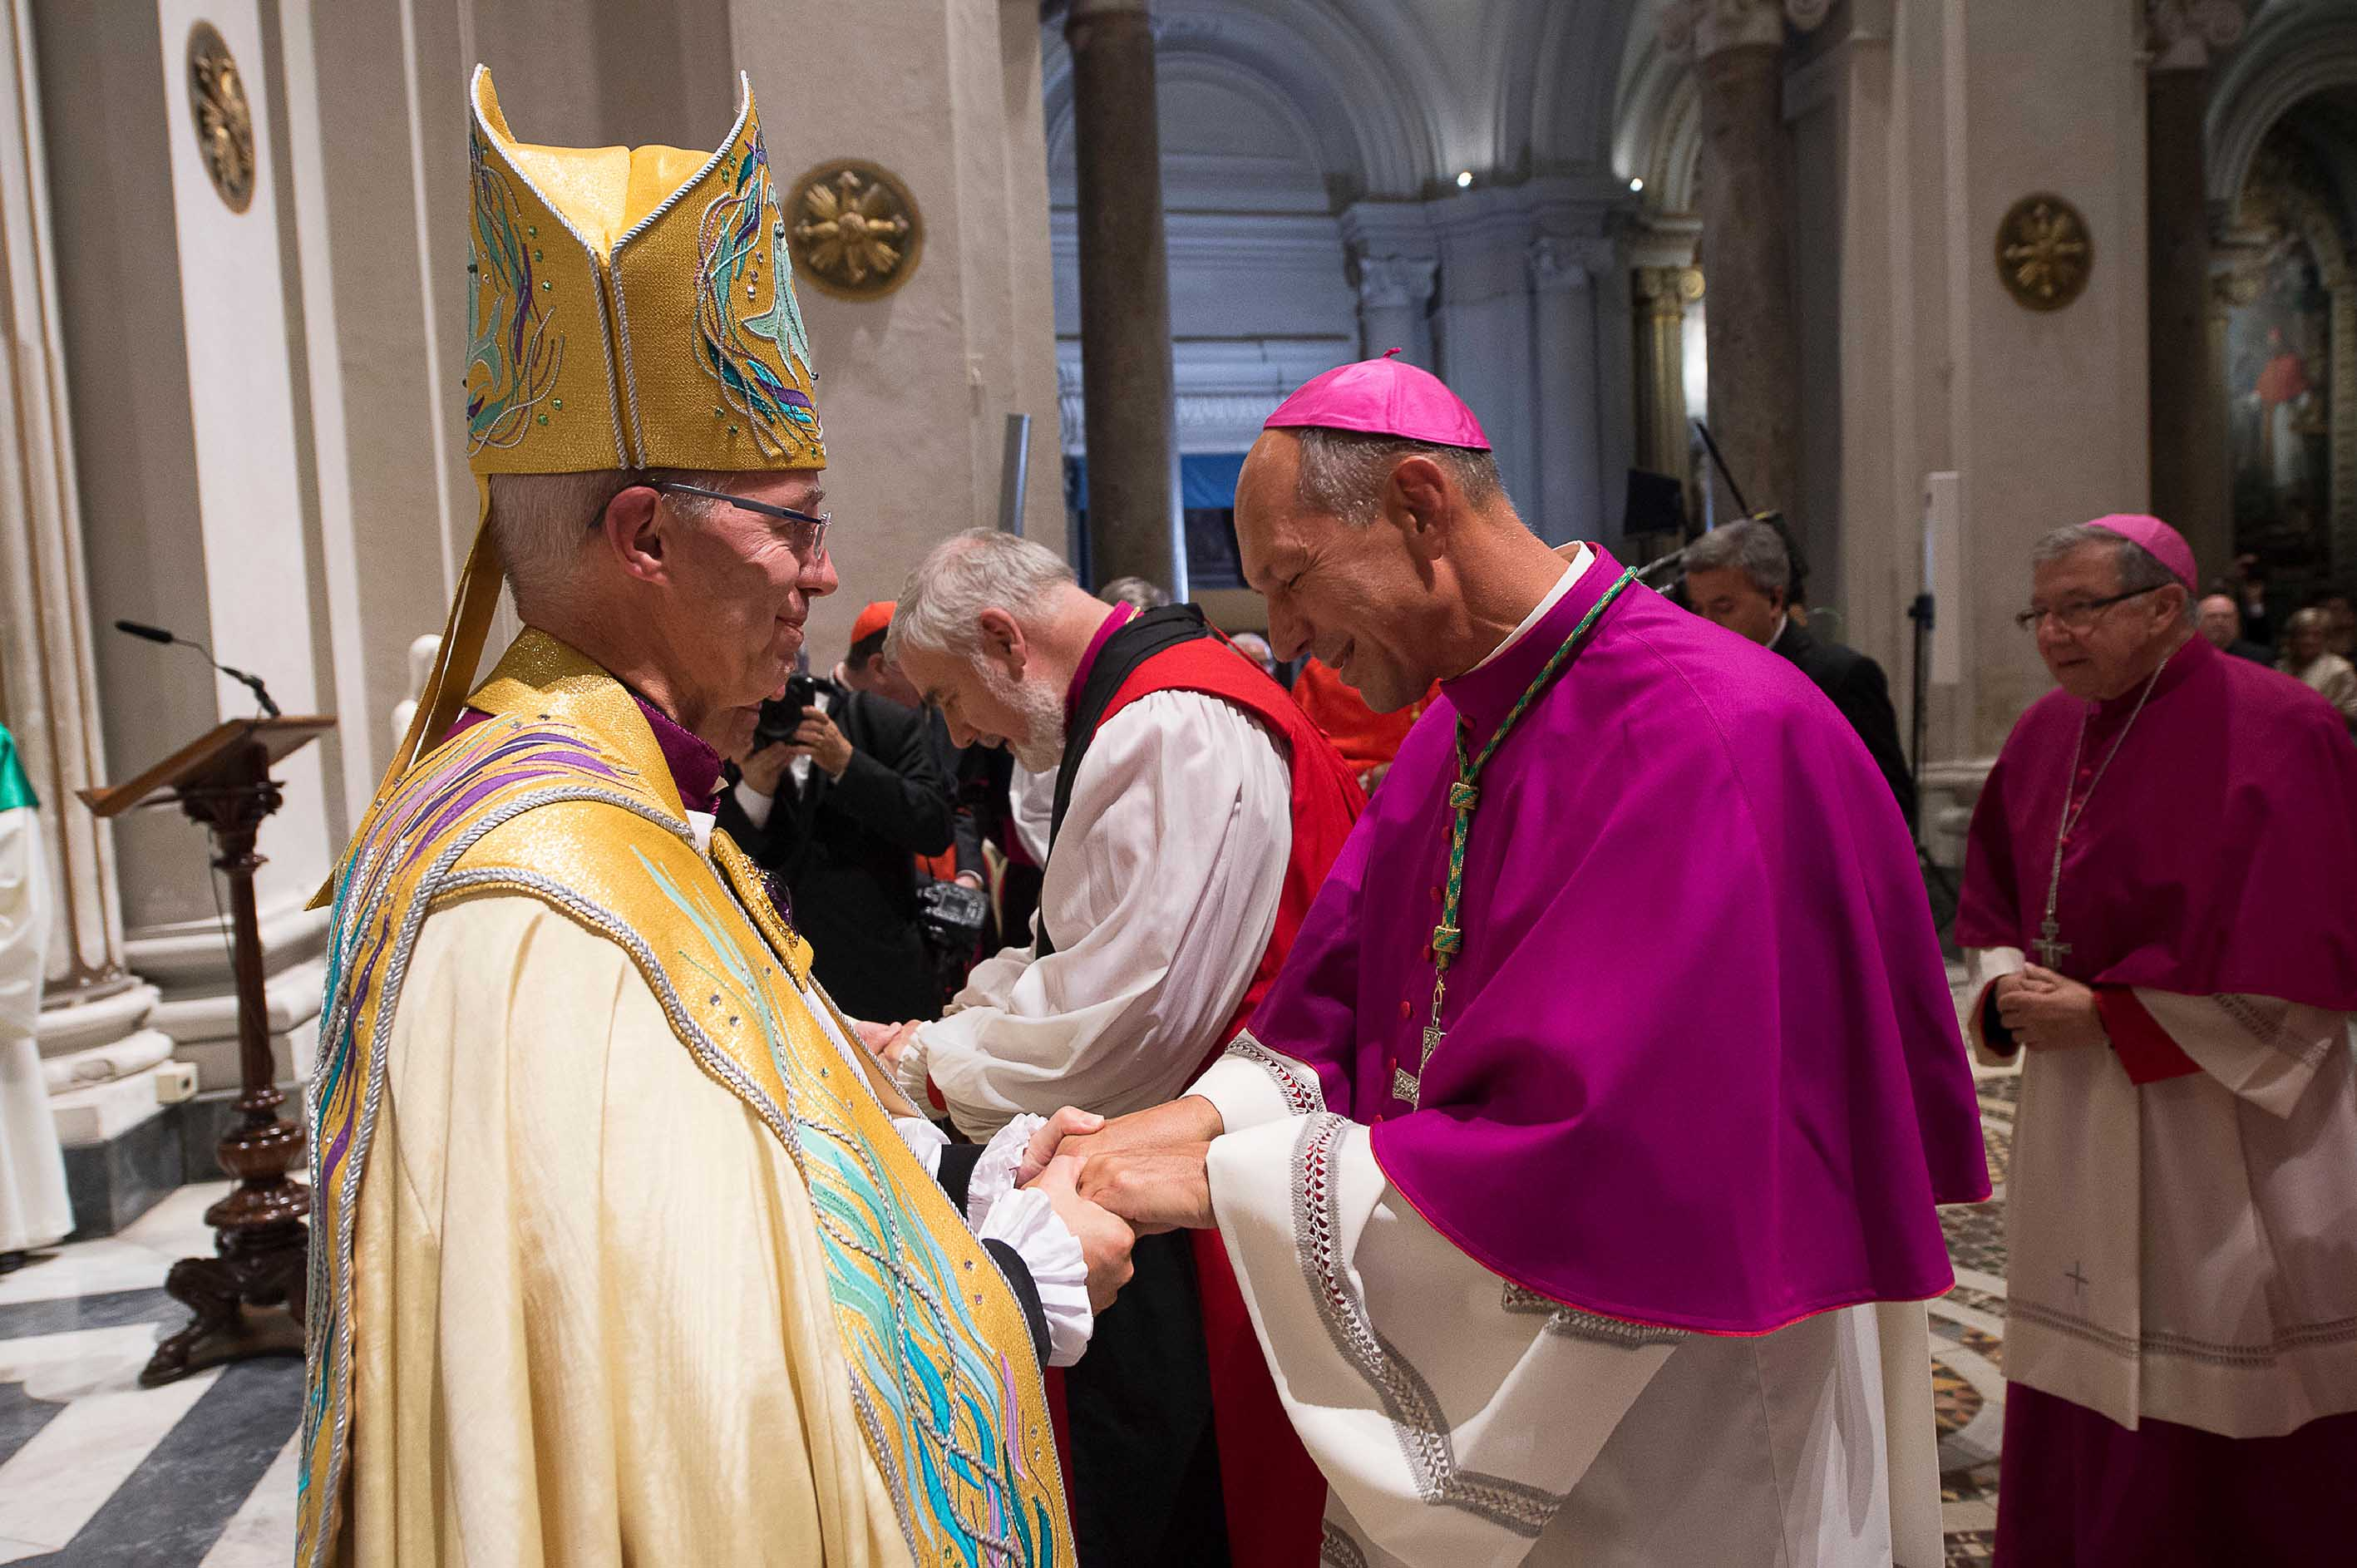 Archbishop Justin Welby commissions Archbishop Donald Bolen, co-chair of IARCCUM, at the Vespers in San Gregorio al Celio